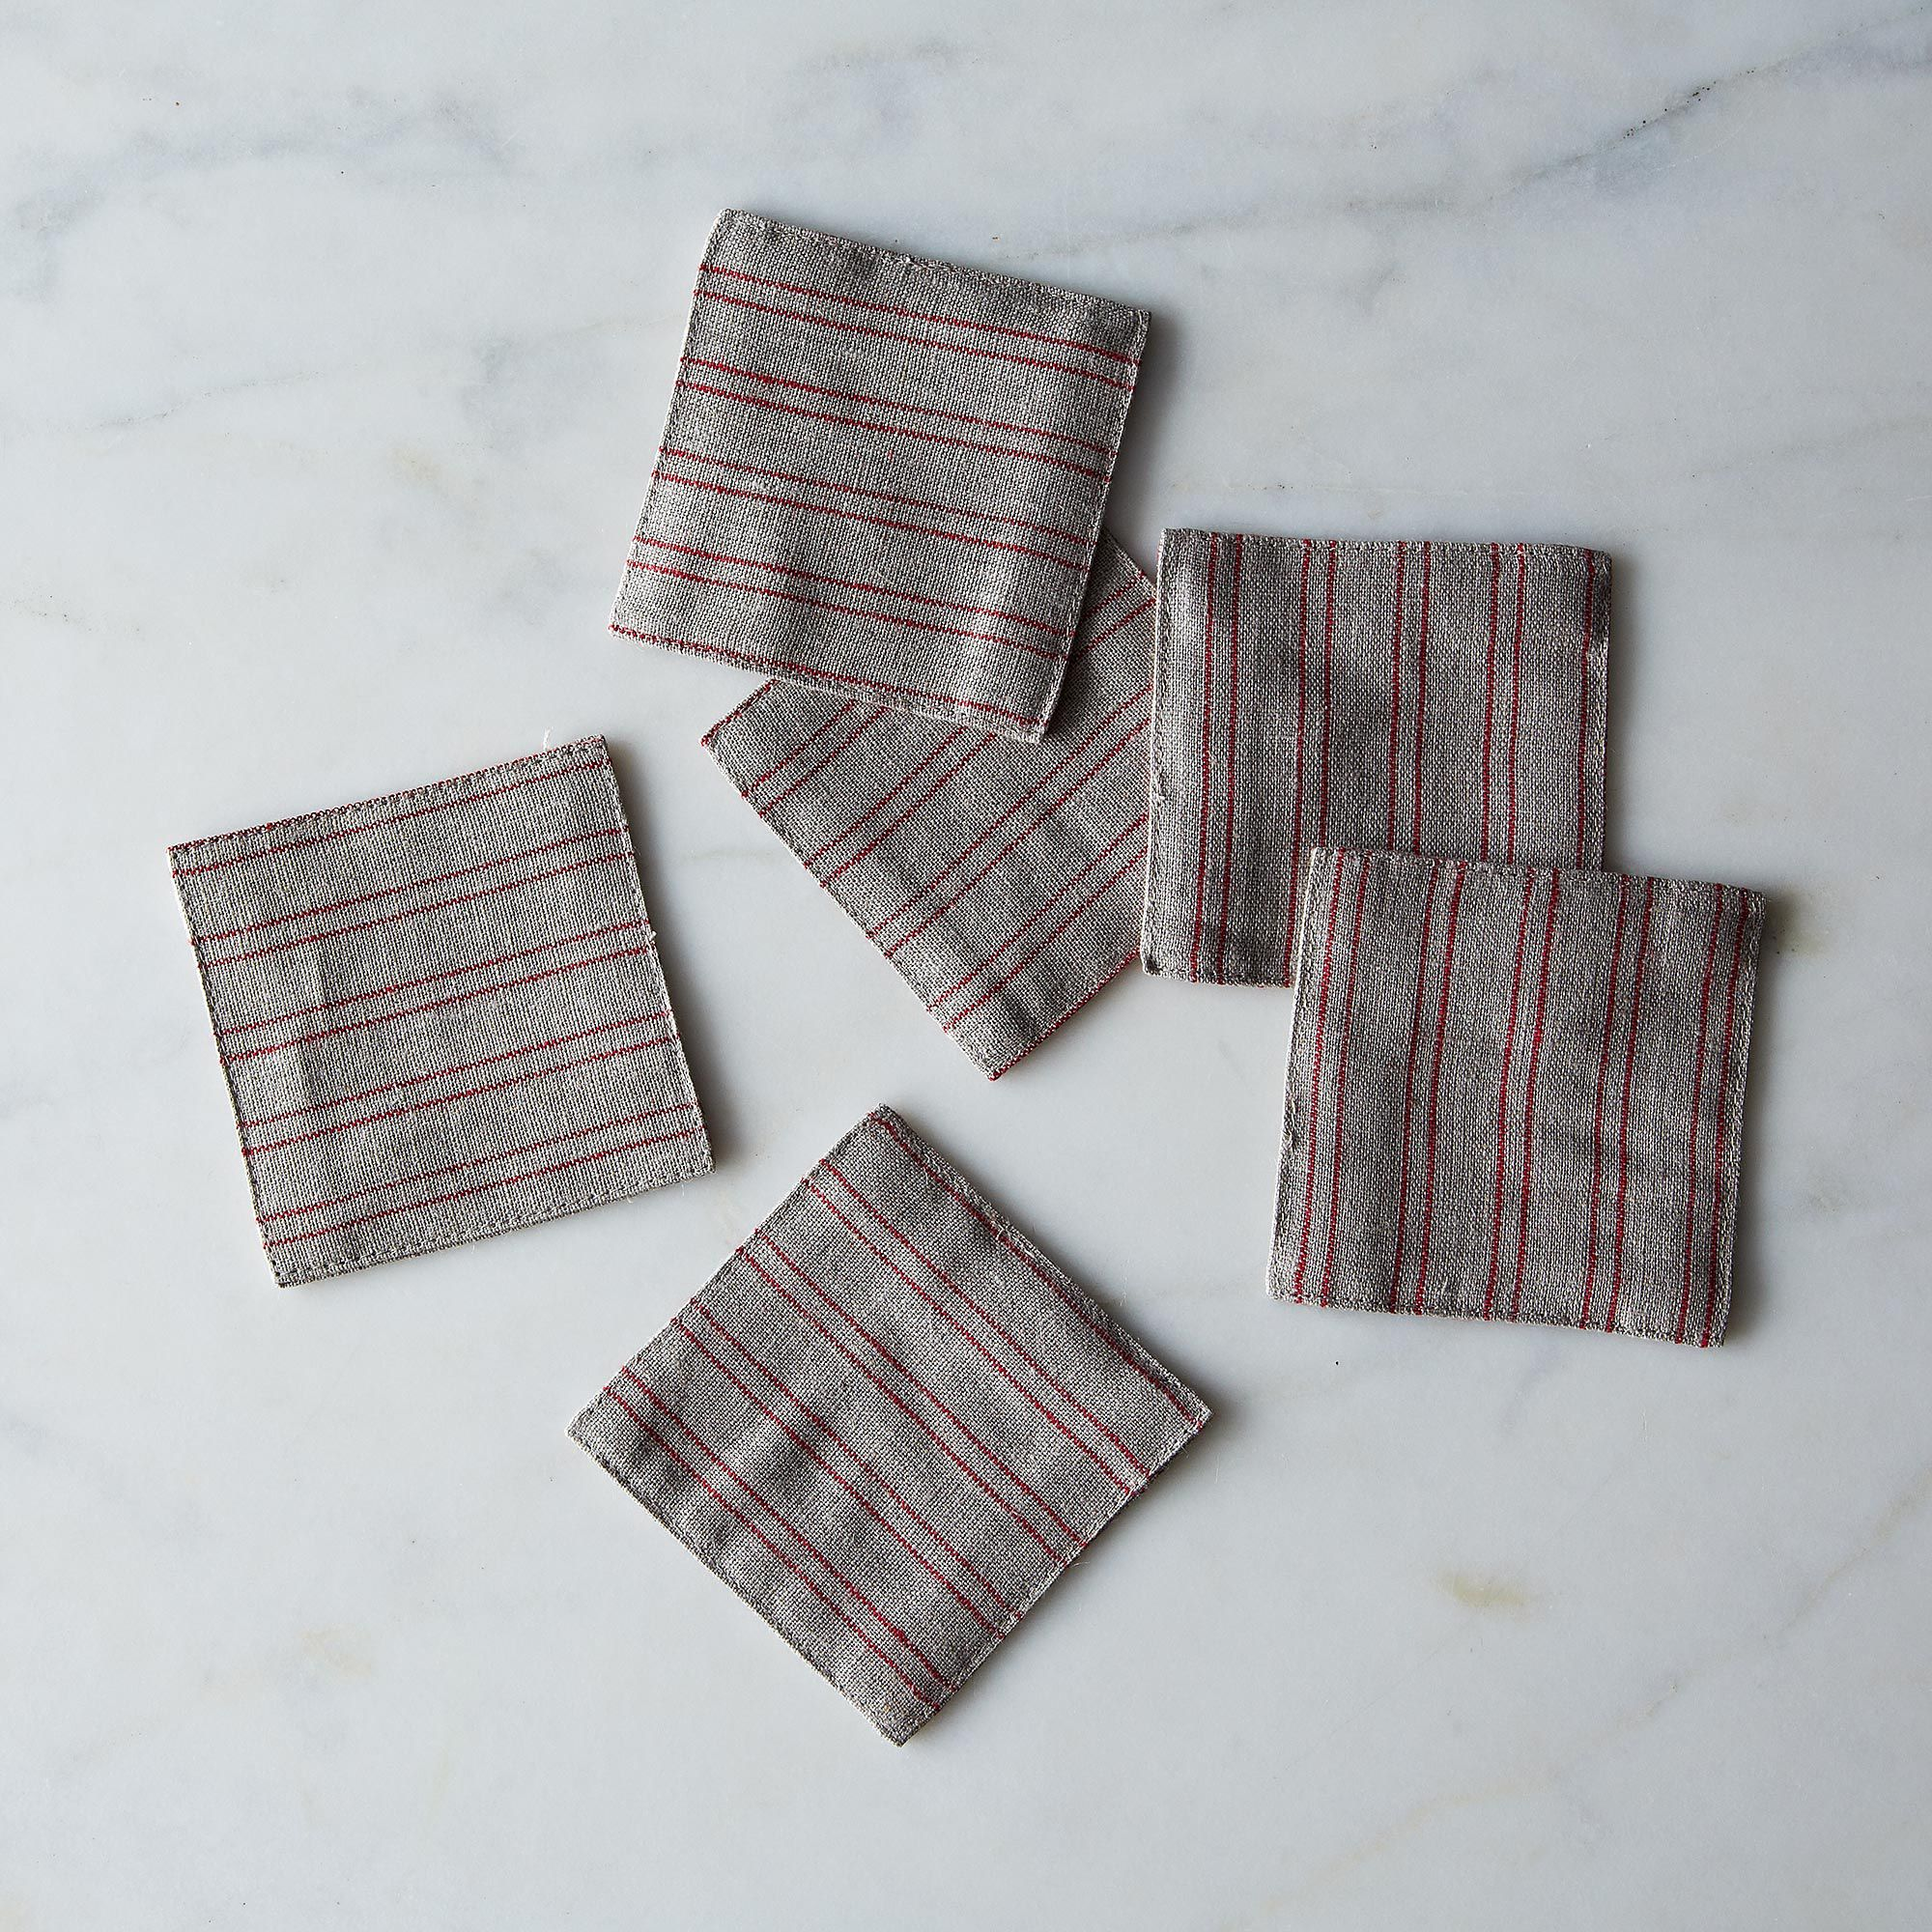 C53533ff b5fc 49d9 b2e5 ee6b132cfb1c  2013 1204 shop fog linen natural red stripe coasters 011